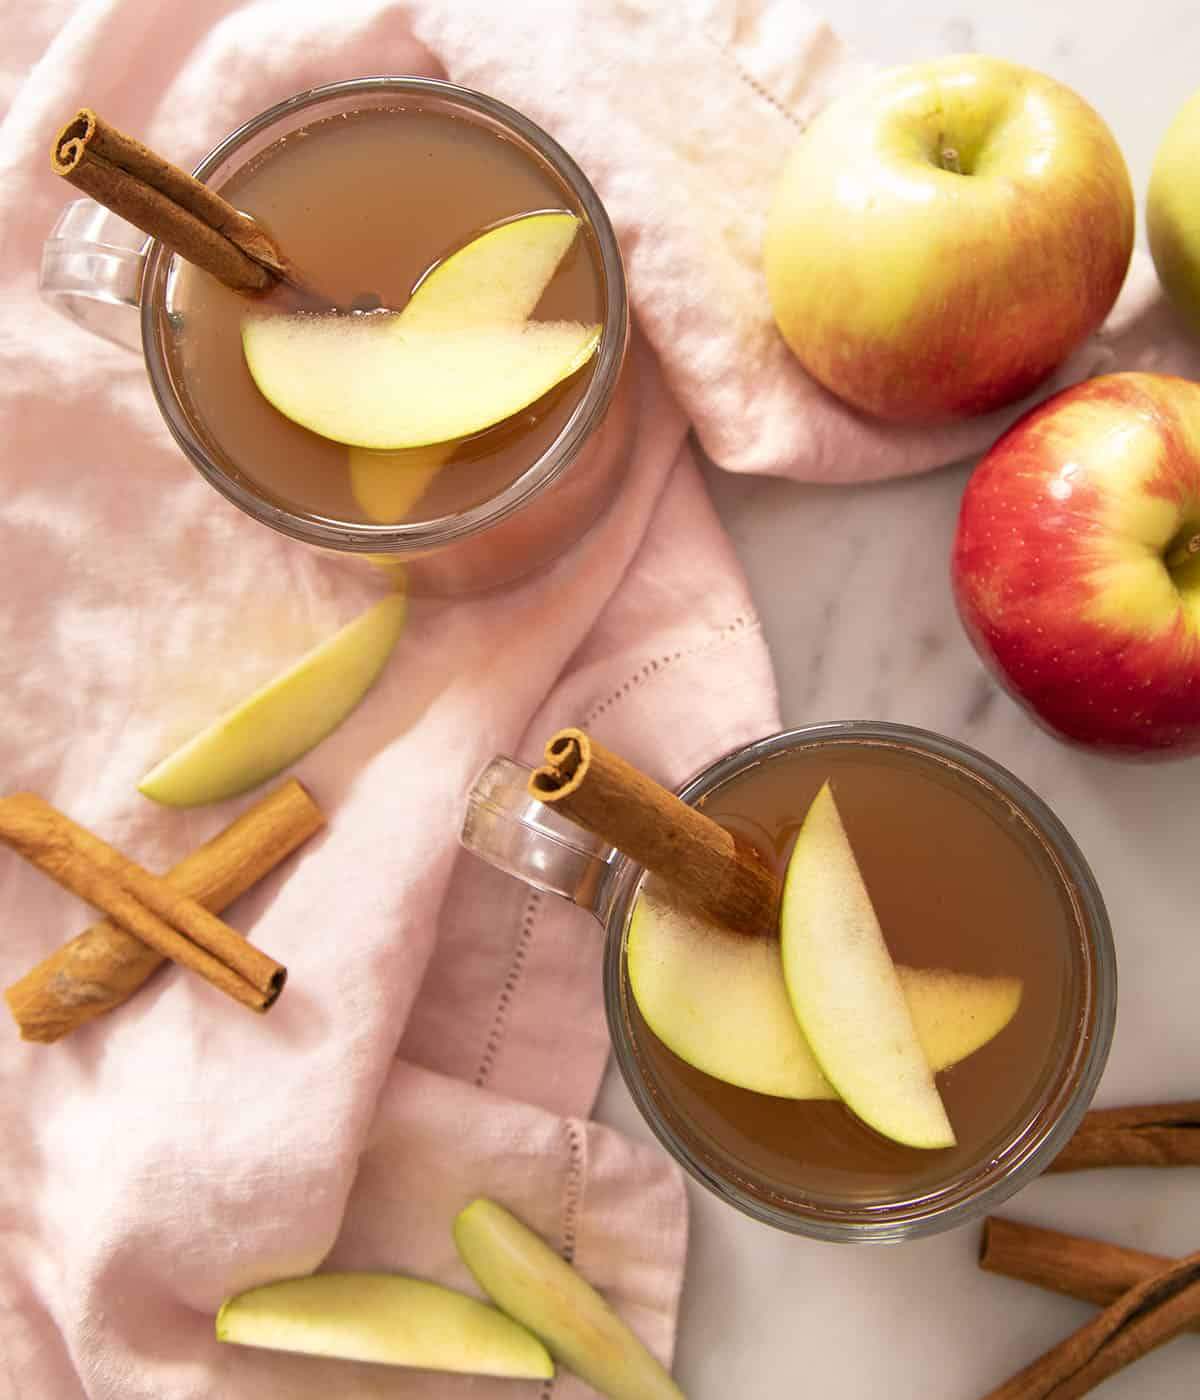 Two glasses of apple cider garnished with cinnamon sticks and apple slices on a marble counter..